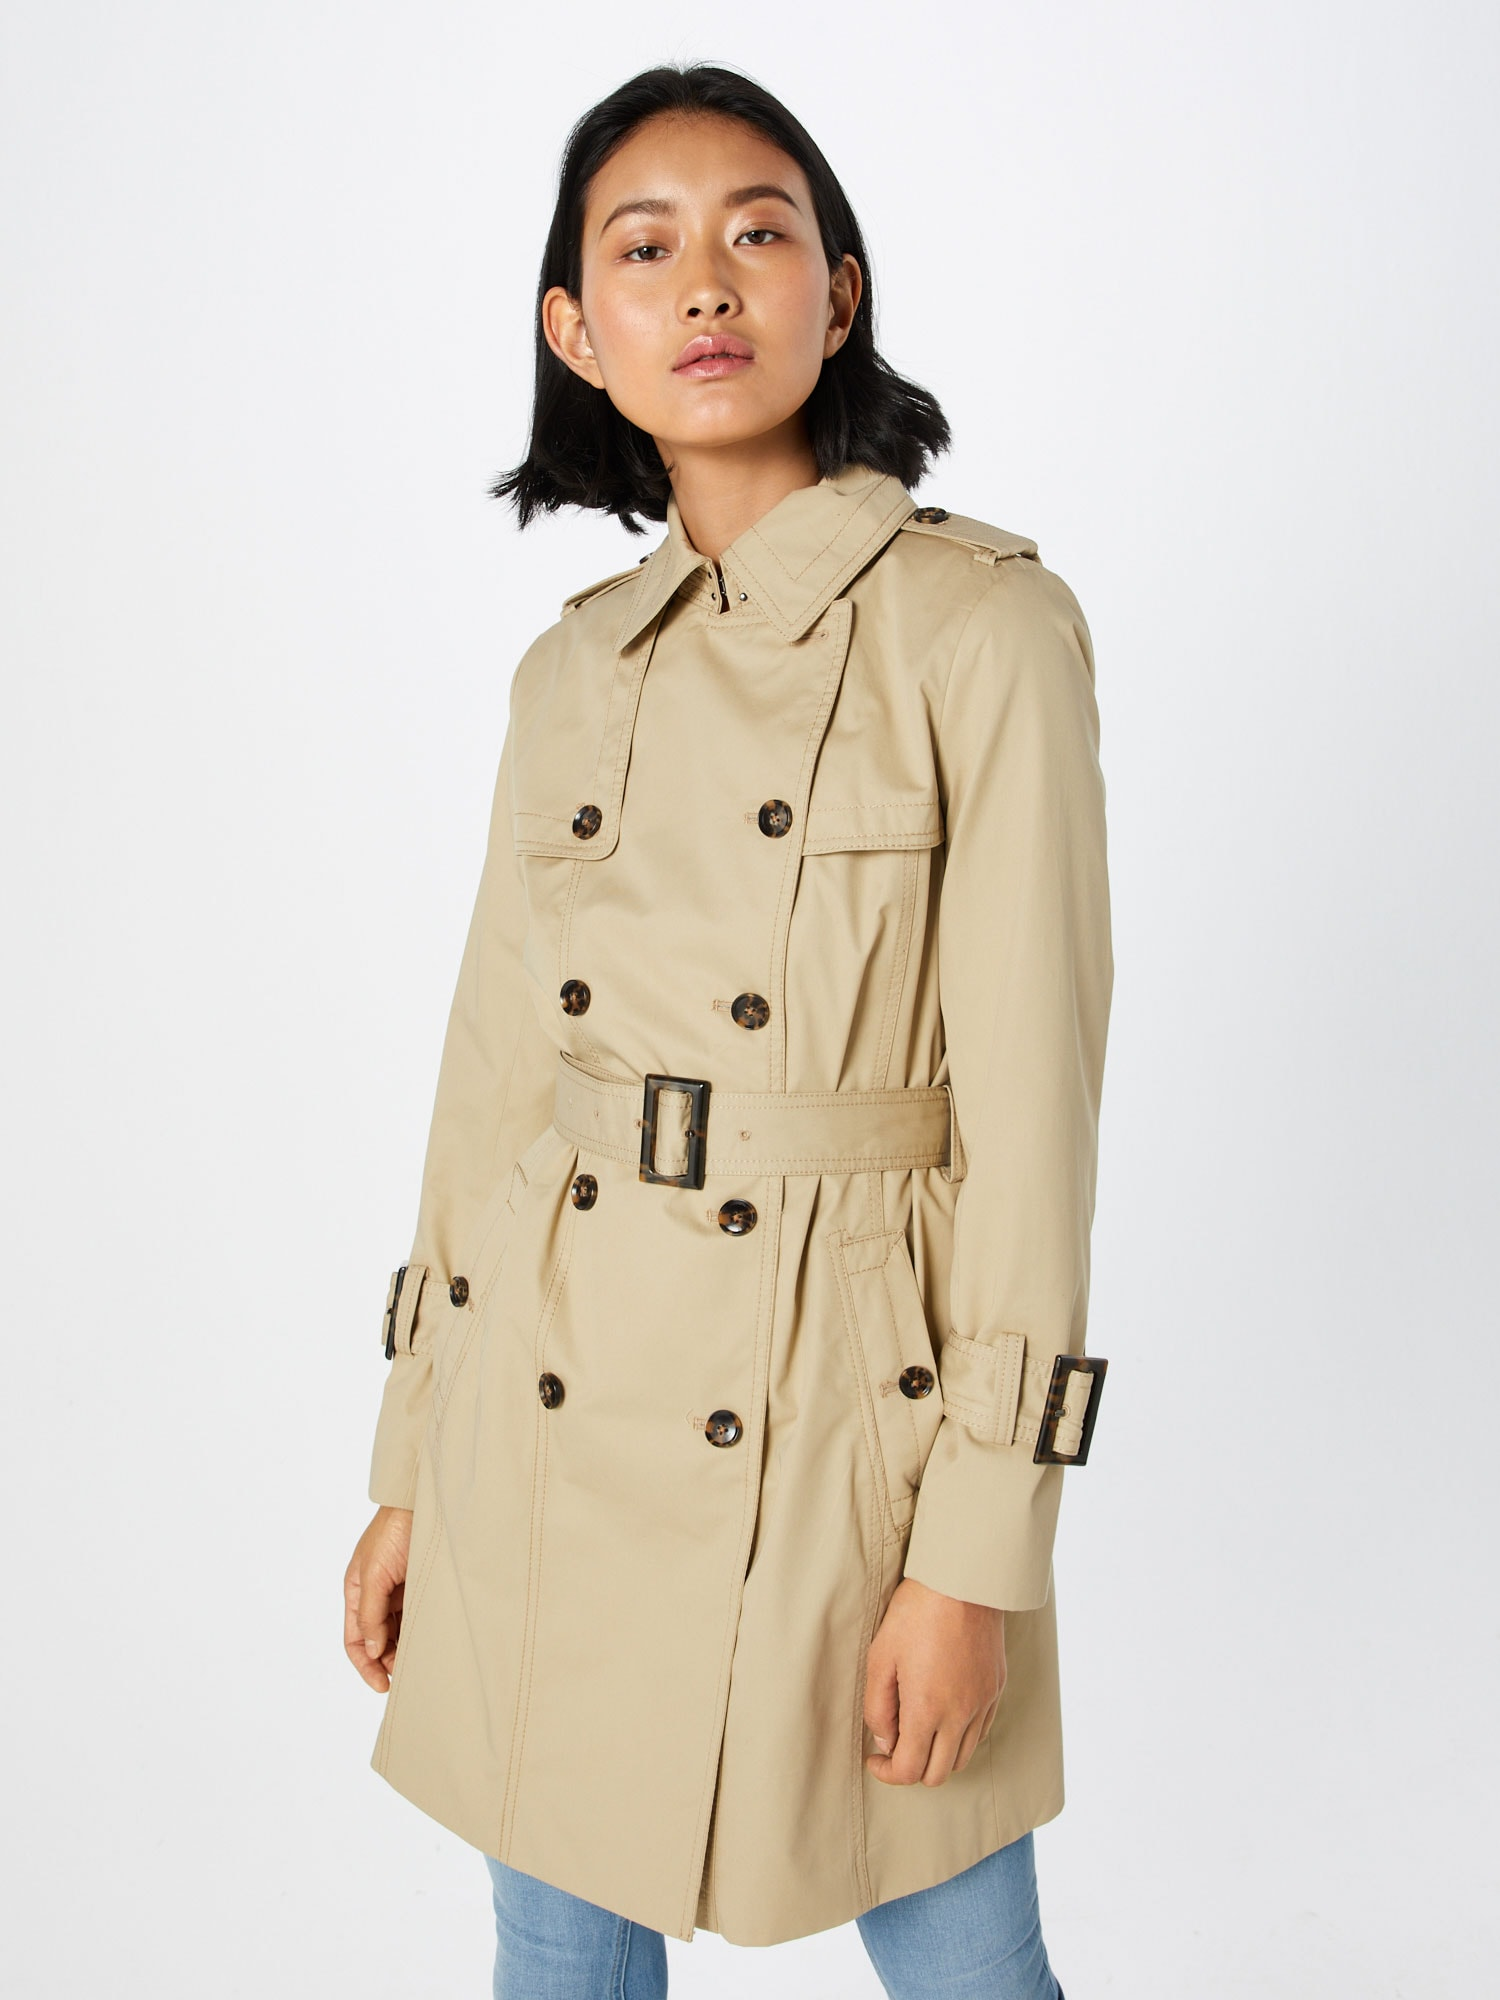 banana republic - Trenchcoat